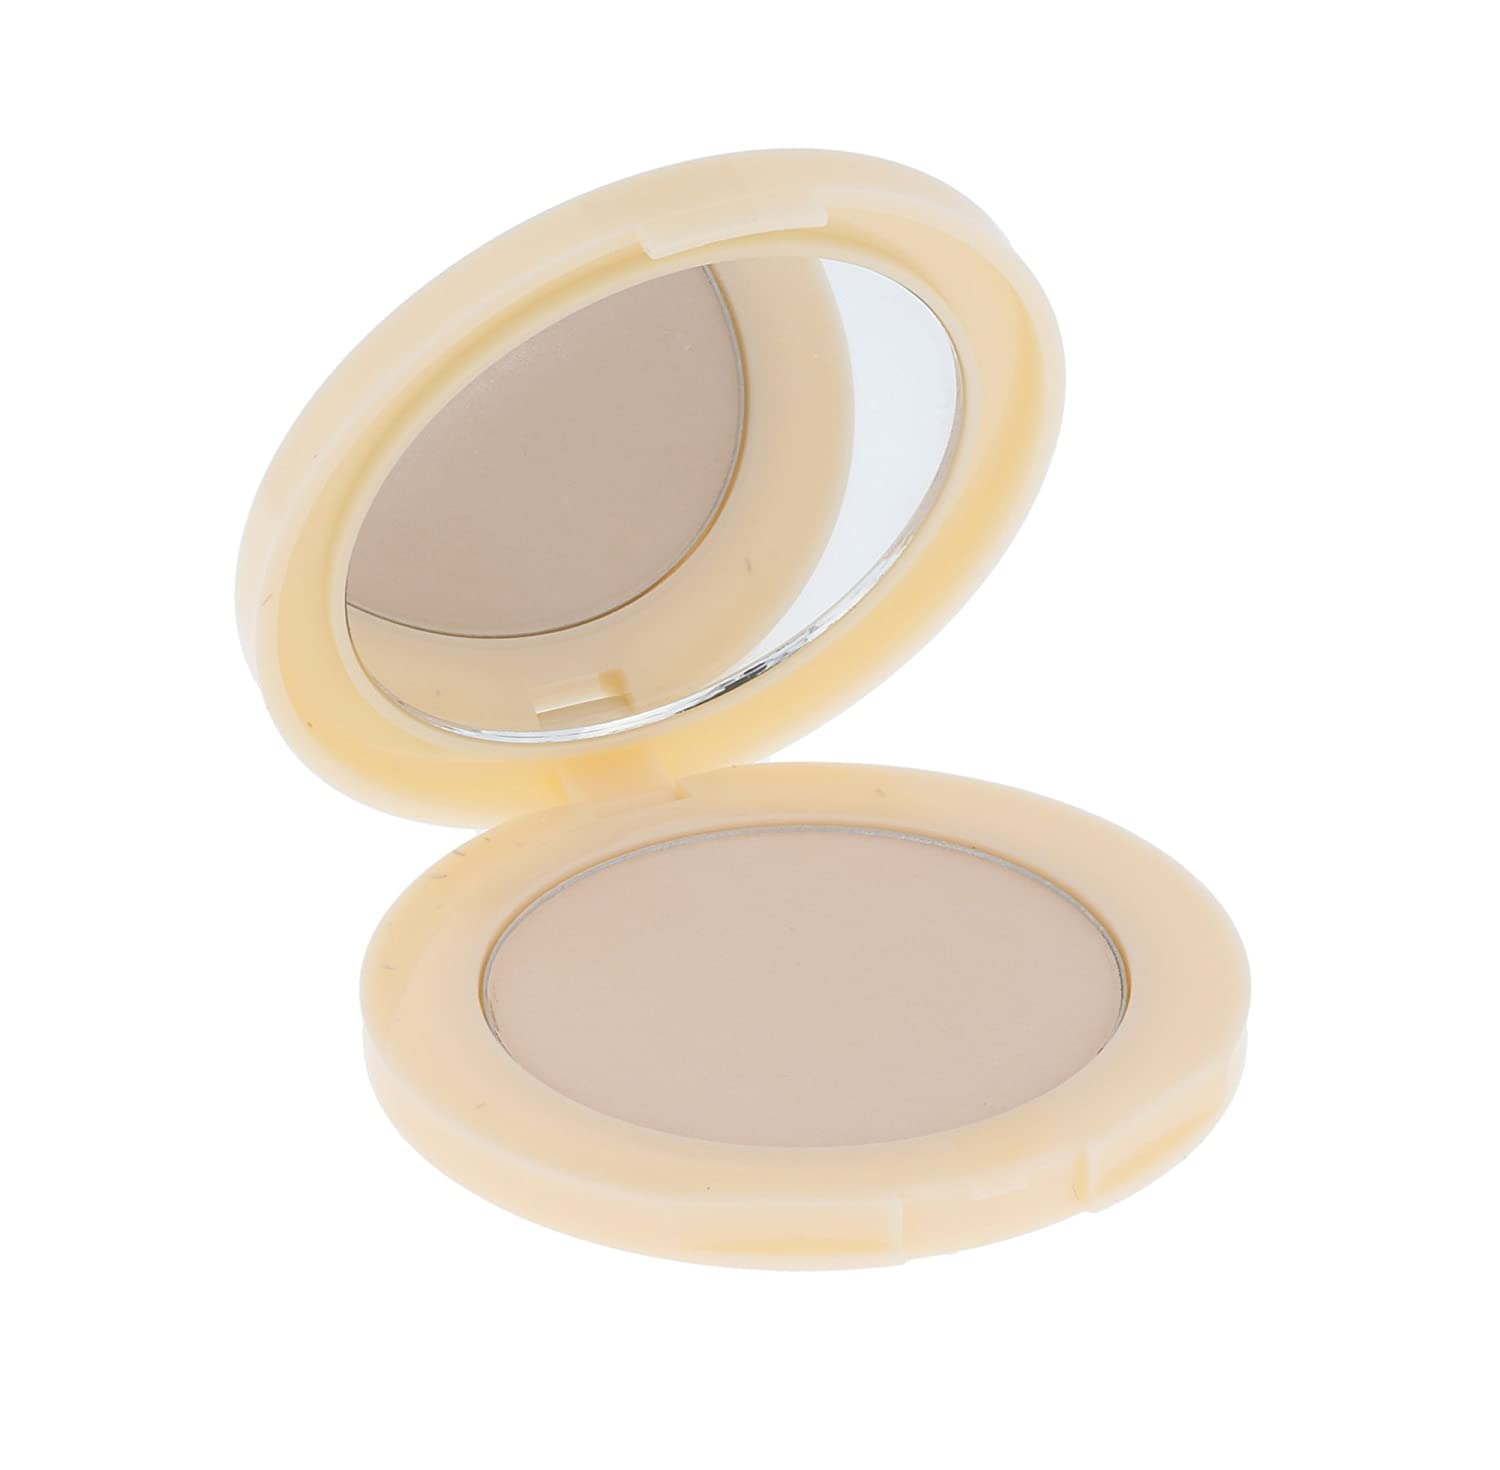 Maybelline New York Affinitone True to Skin Perfecting Powder (03 Light Sand Beige) 258228